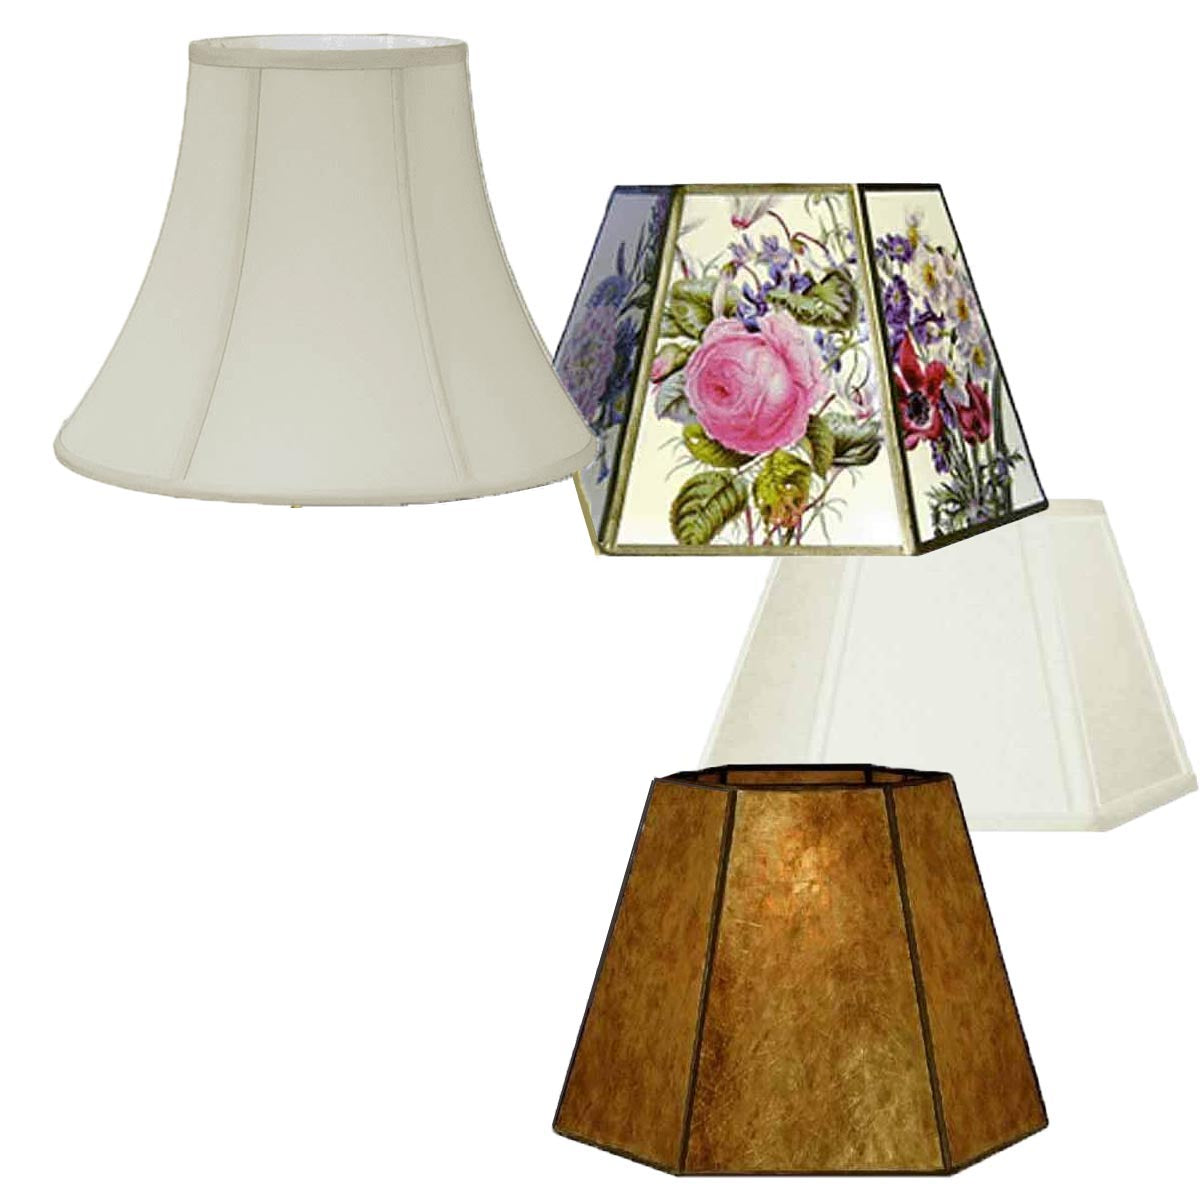 Fabric, Mica, Parchment Lamp Shades